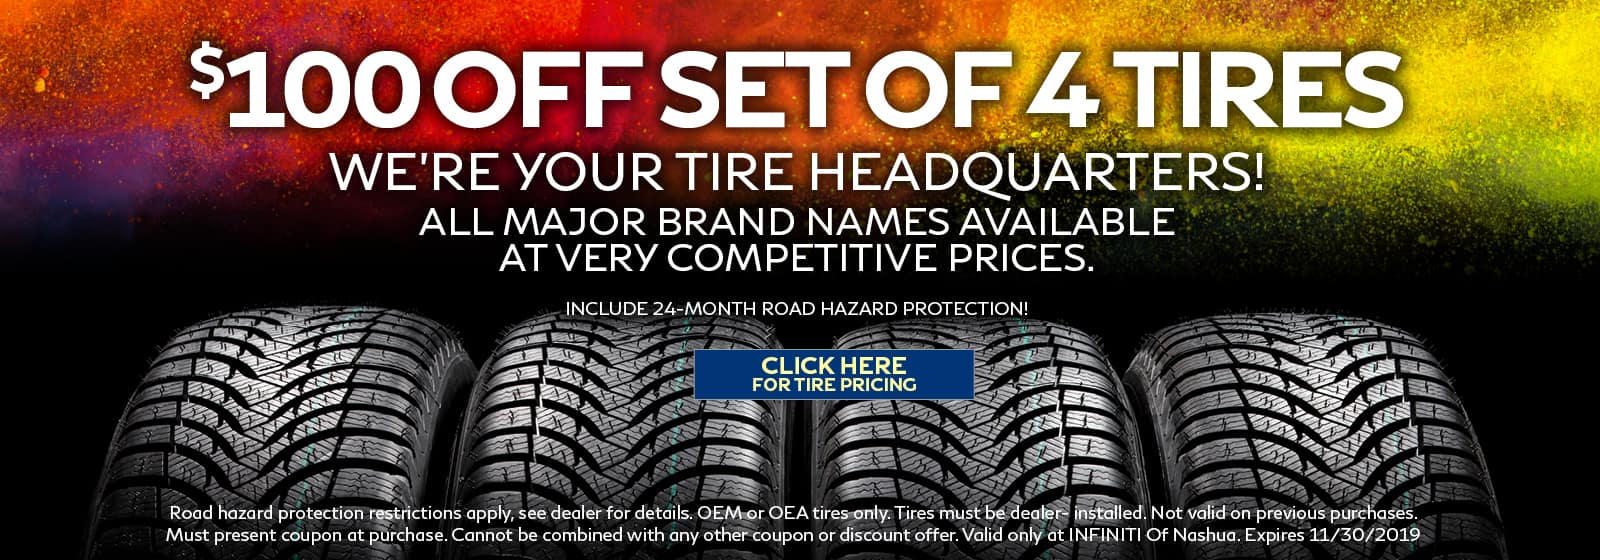 $100 off set of 4 tires